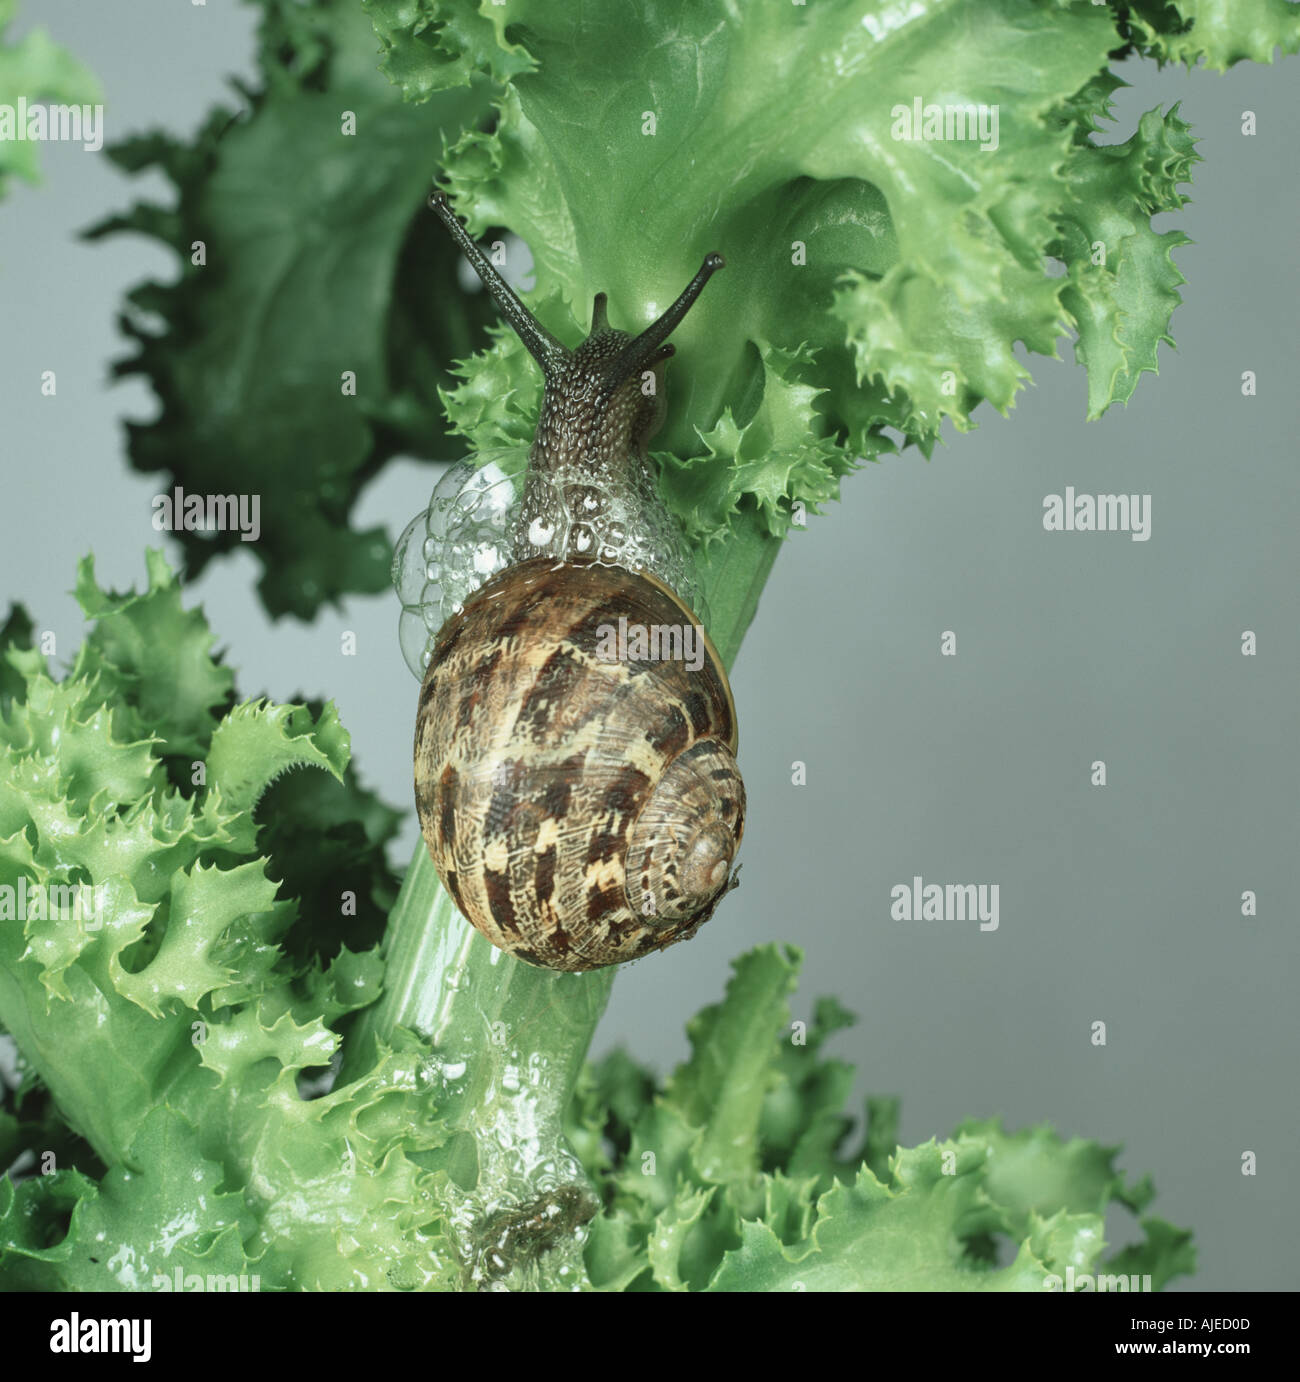 A garden snail Cornu aspersum with defensive bubbles on an endive leaf - Stock Image